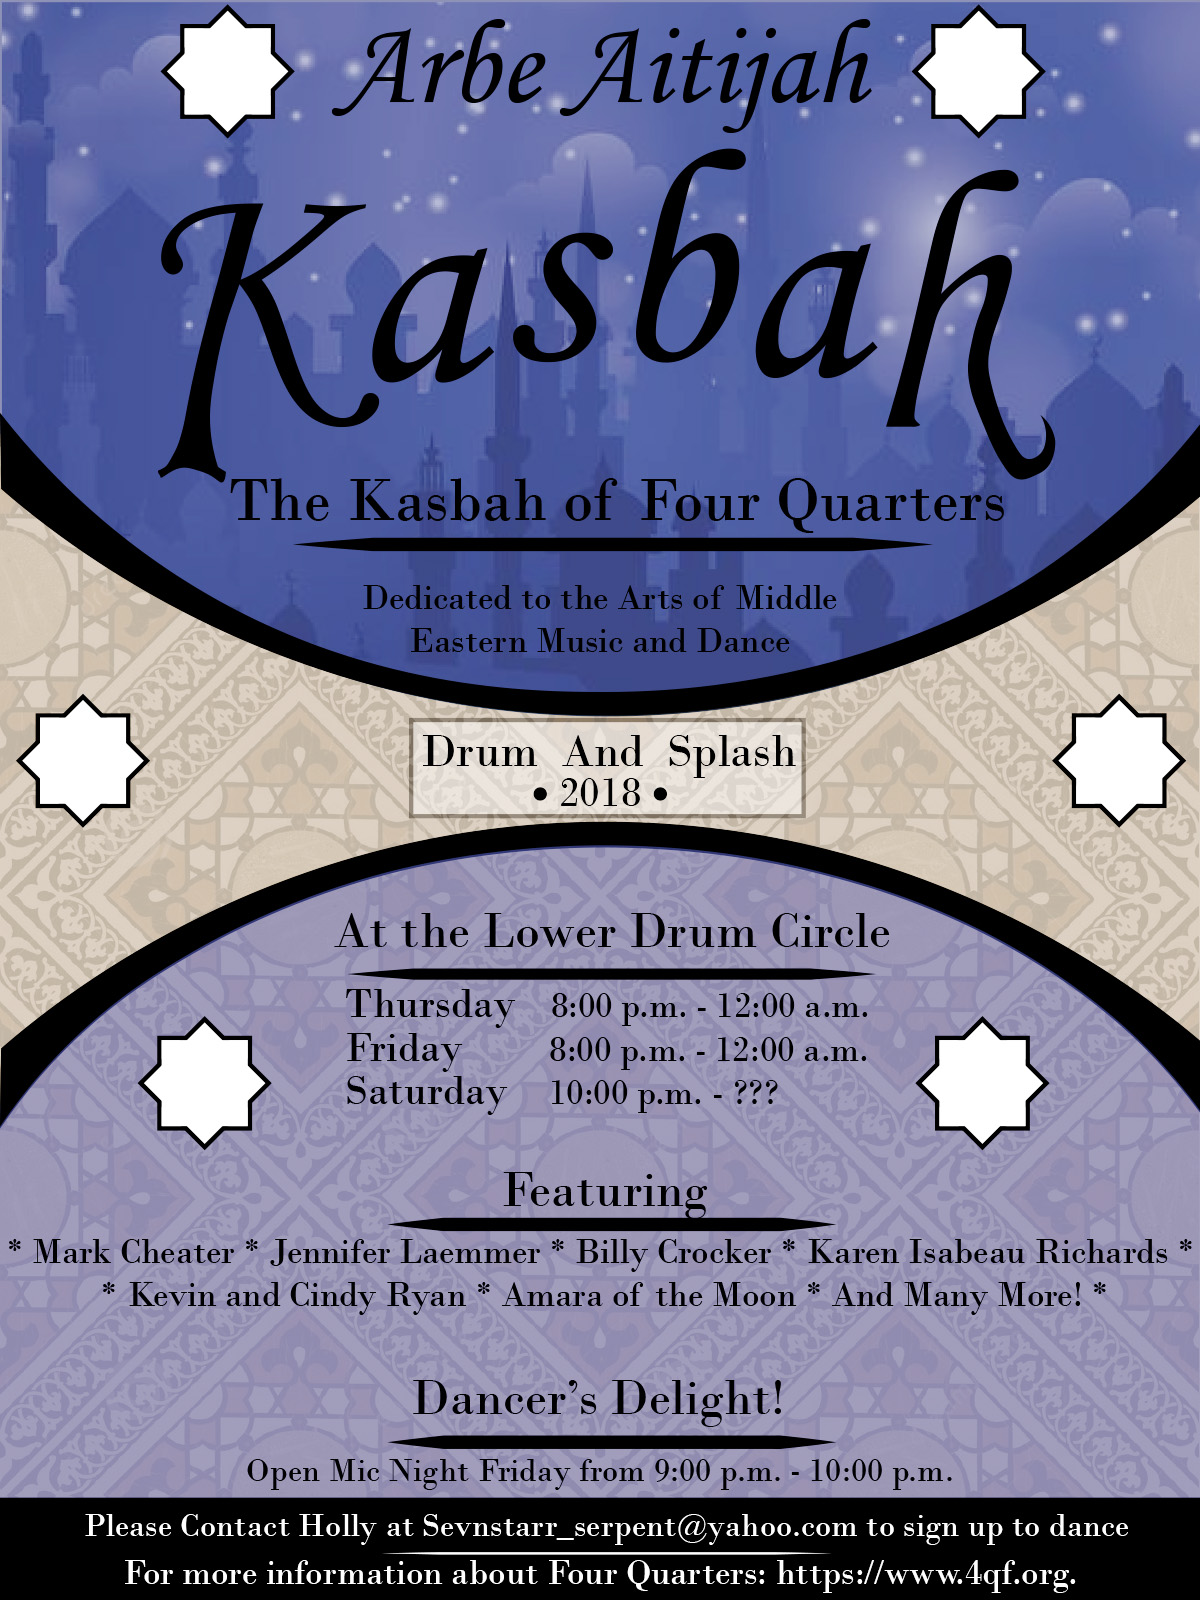 Drum & Splash 2018 - The Kasbah promo flyer